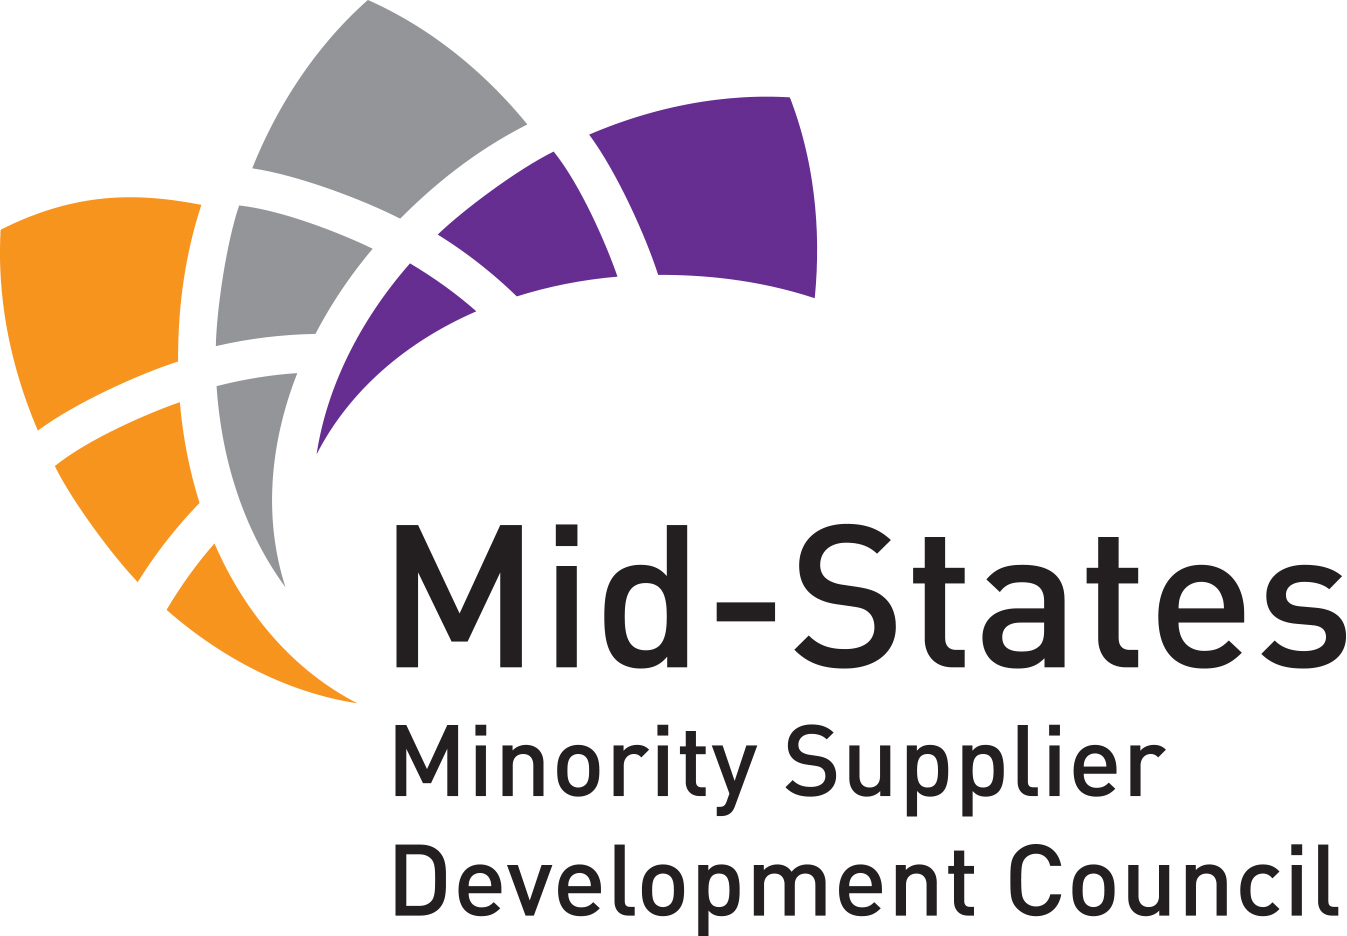 Mid-States Minority Supplier Development Council Logo